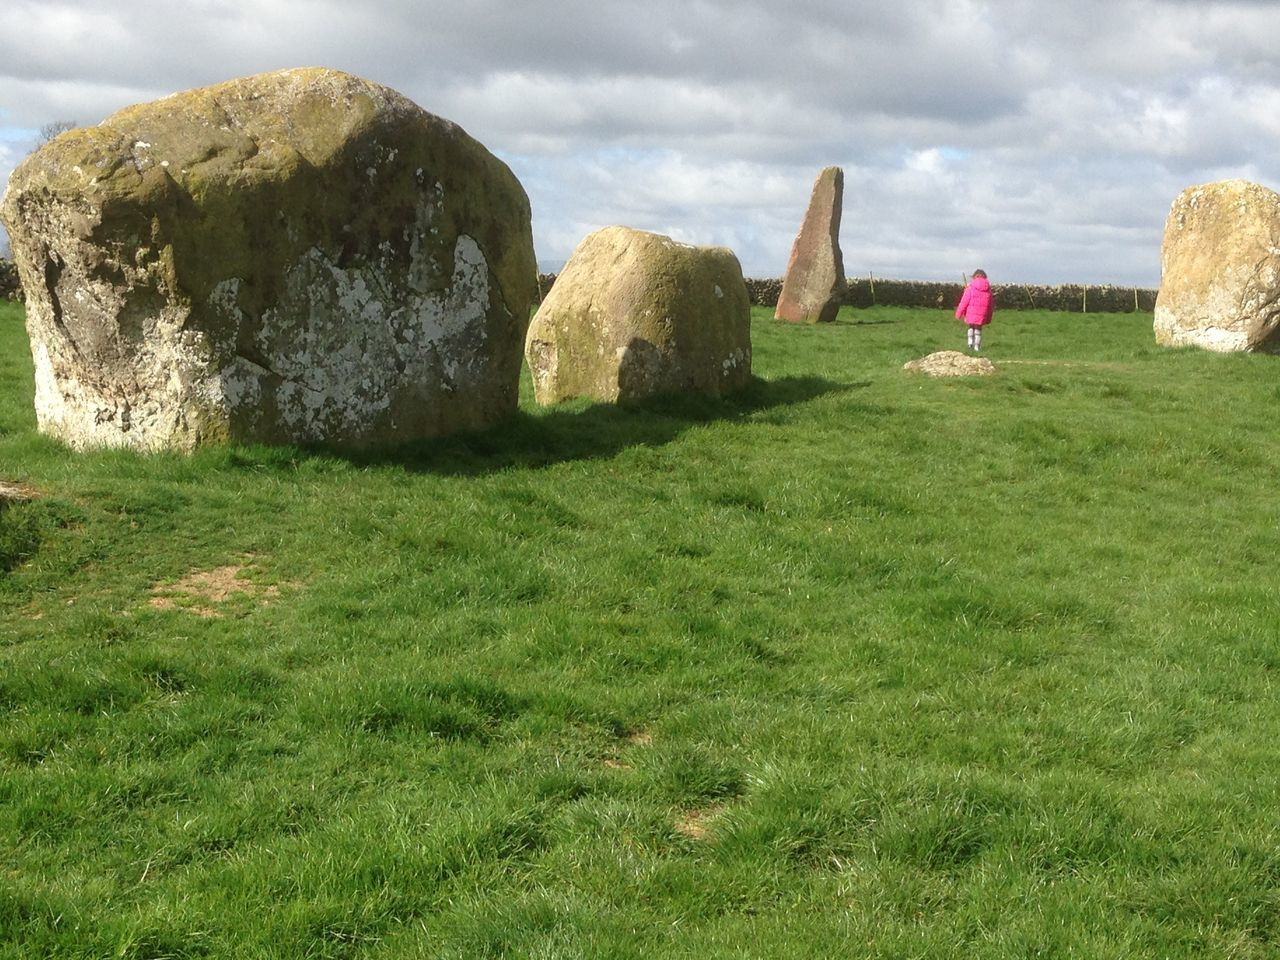 Field Grass Grassy Landscape Long Meg Outdoors Rock Standing Standing Stones Stone People And Places Ancient